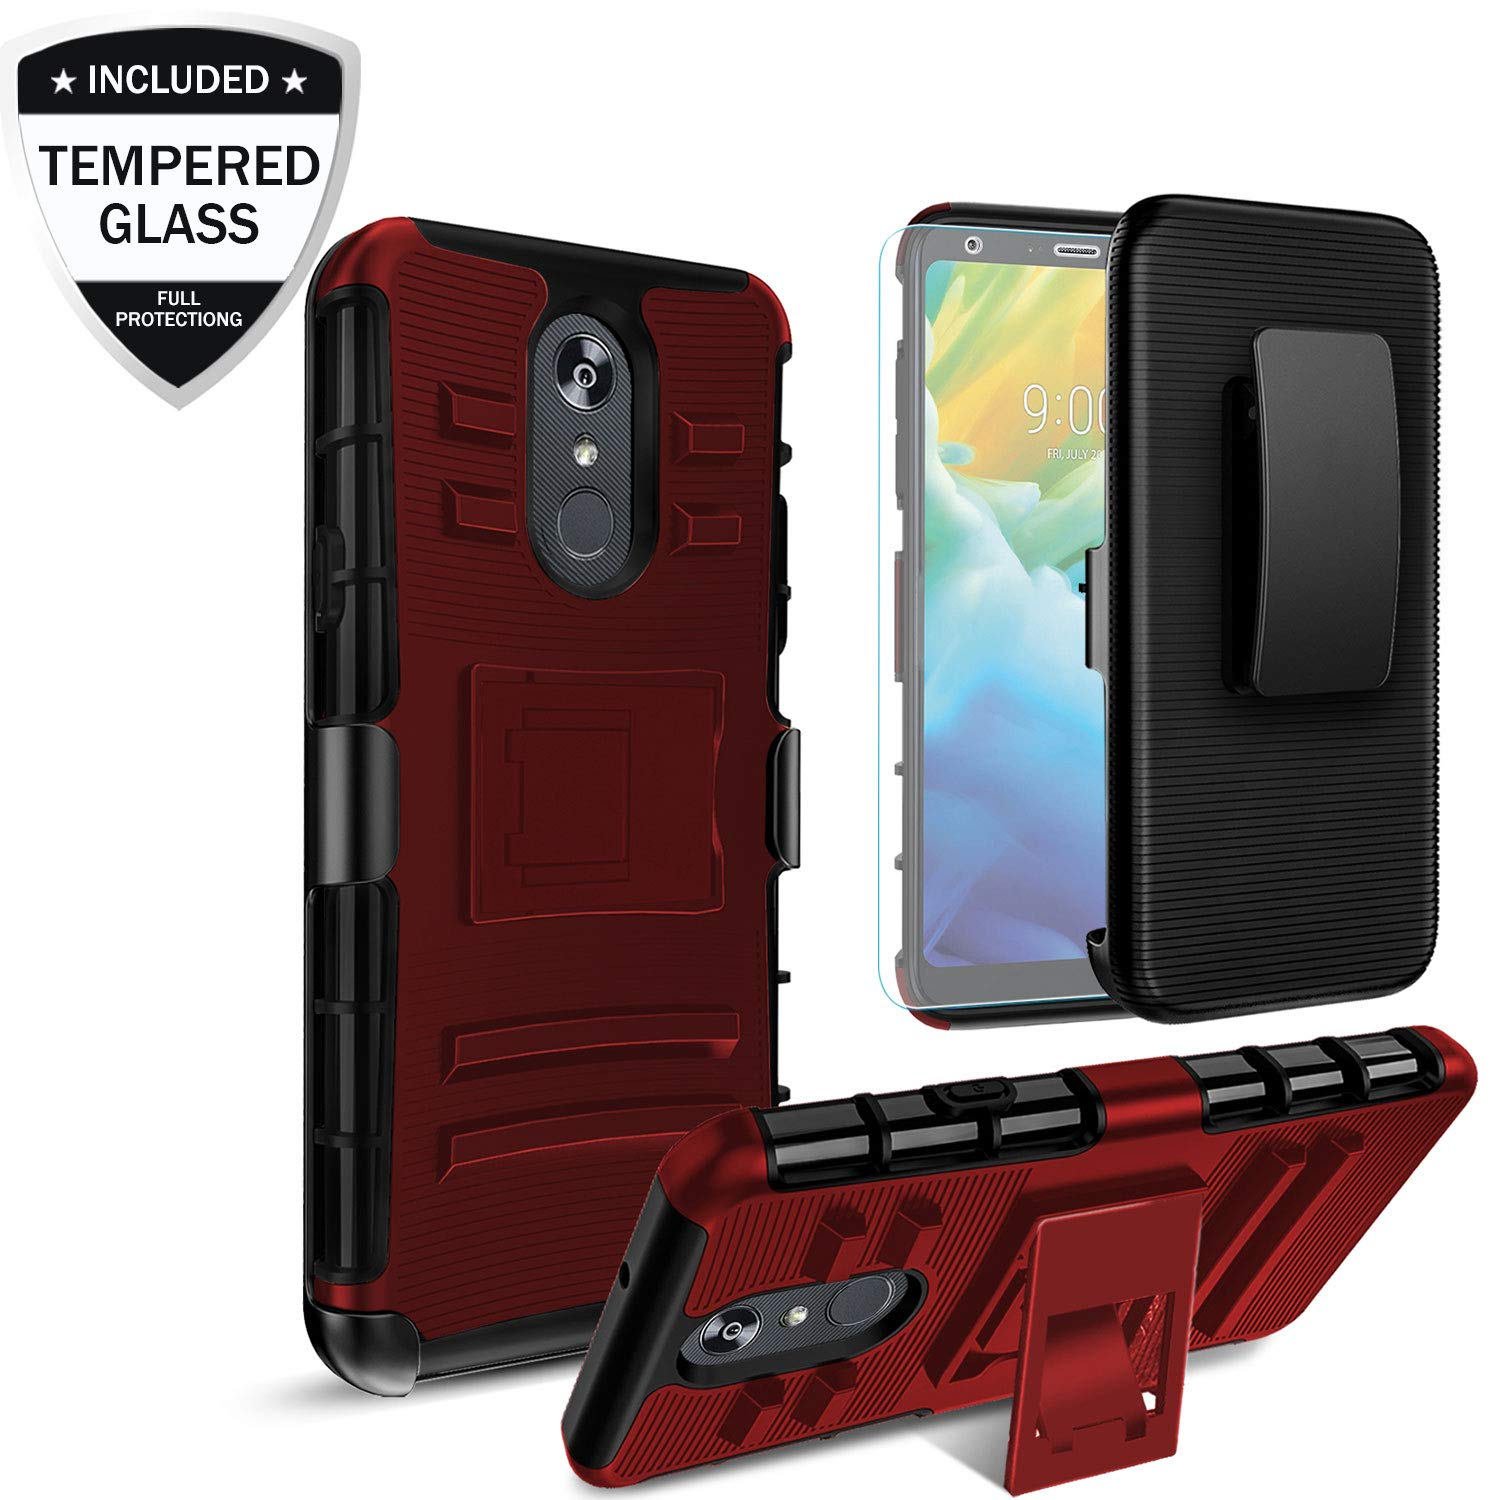 LG Stylo 4 Case,LG Stylo 4 Plus Phone Case with Tempered Glass Screen Protector,【Built-in Kickstand&Belt Clip Holster】Heavy Duty Full-Body Shockproof Protective Hybrid Cover for Men/Women/Boys,PC Red